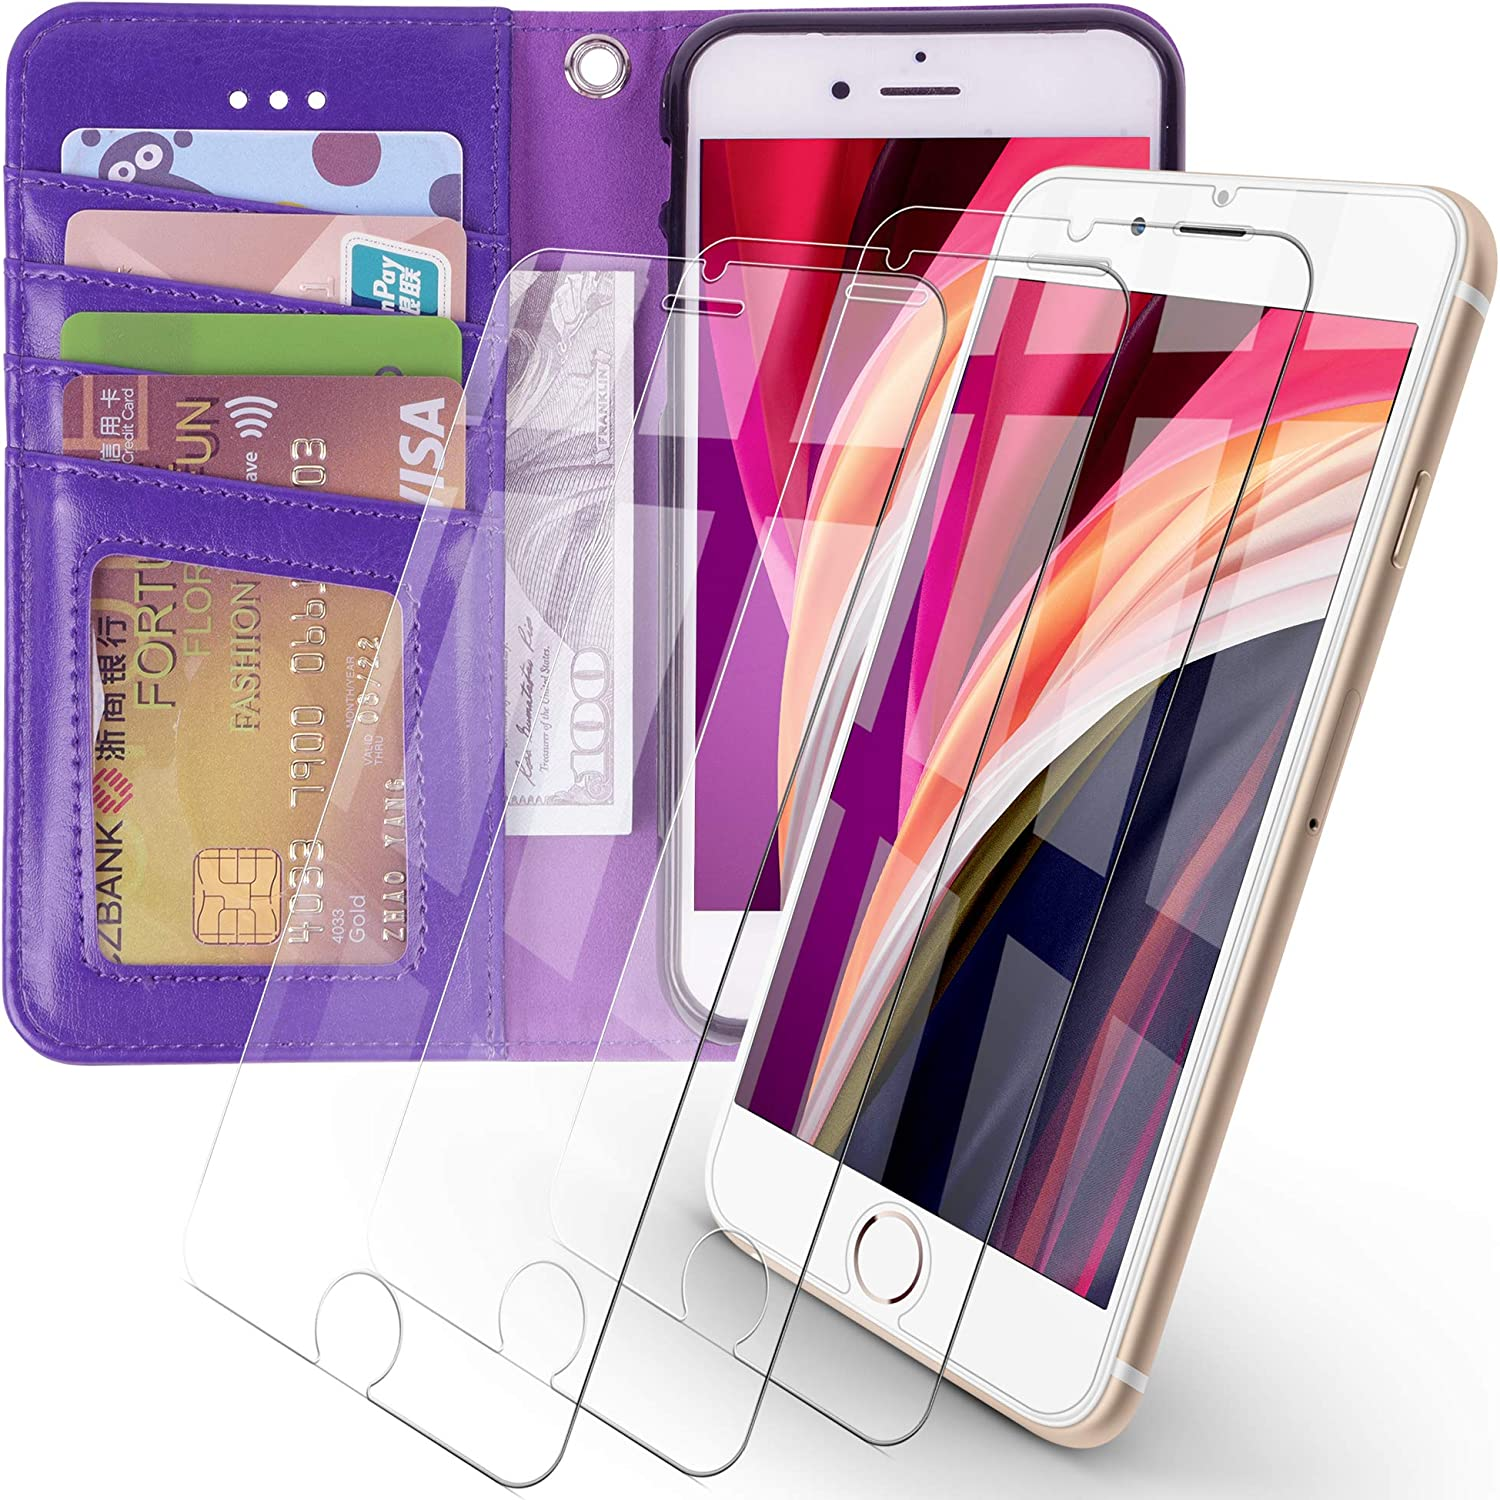 Arae iPhone 7 / iPhone 8 / iPhone SE 2020 Premium PU Leather Flip Cover Wallet Case (Purple) with 3 Pack Ultra-Thin HD Tempered Glass Screen Protectors, 4.7 inch